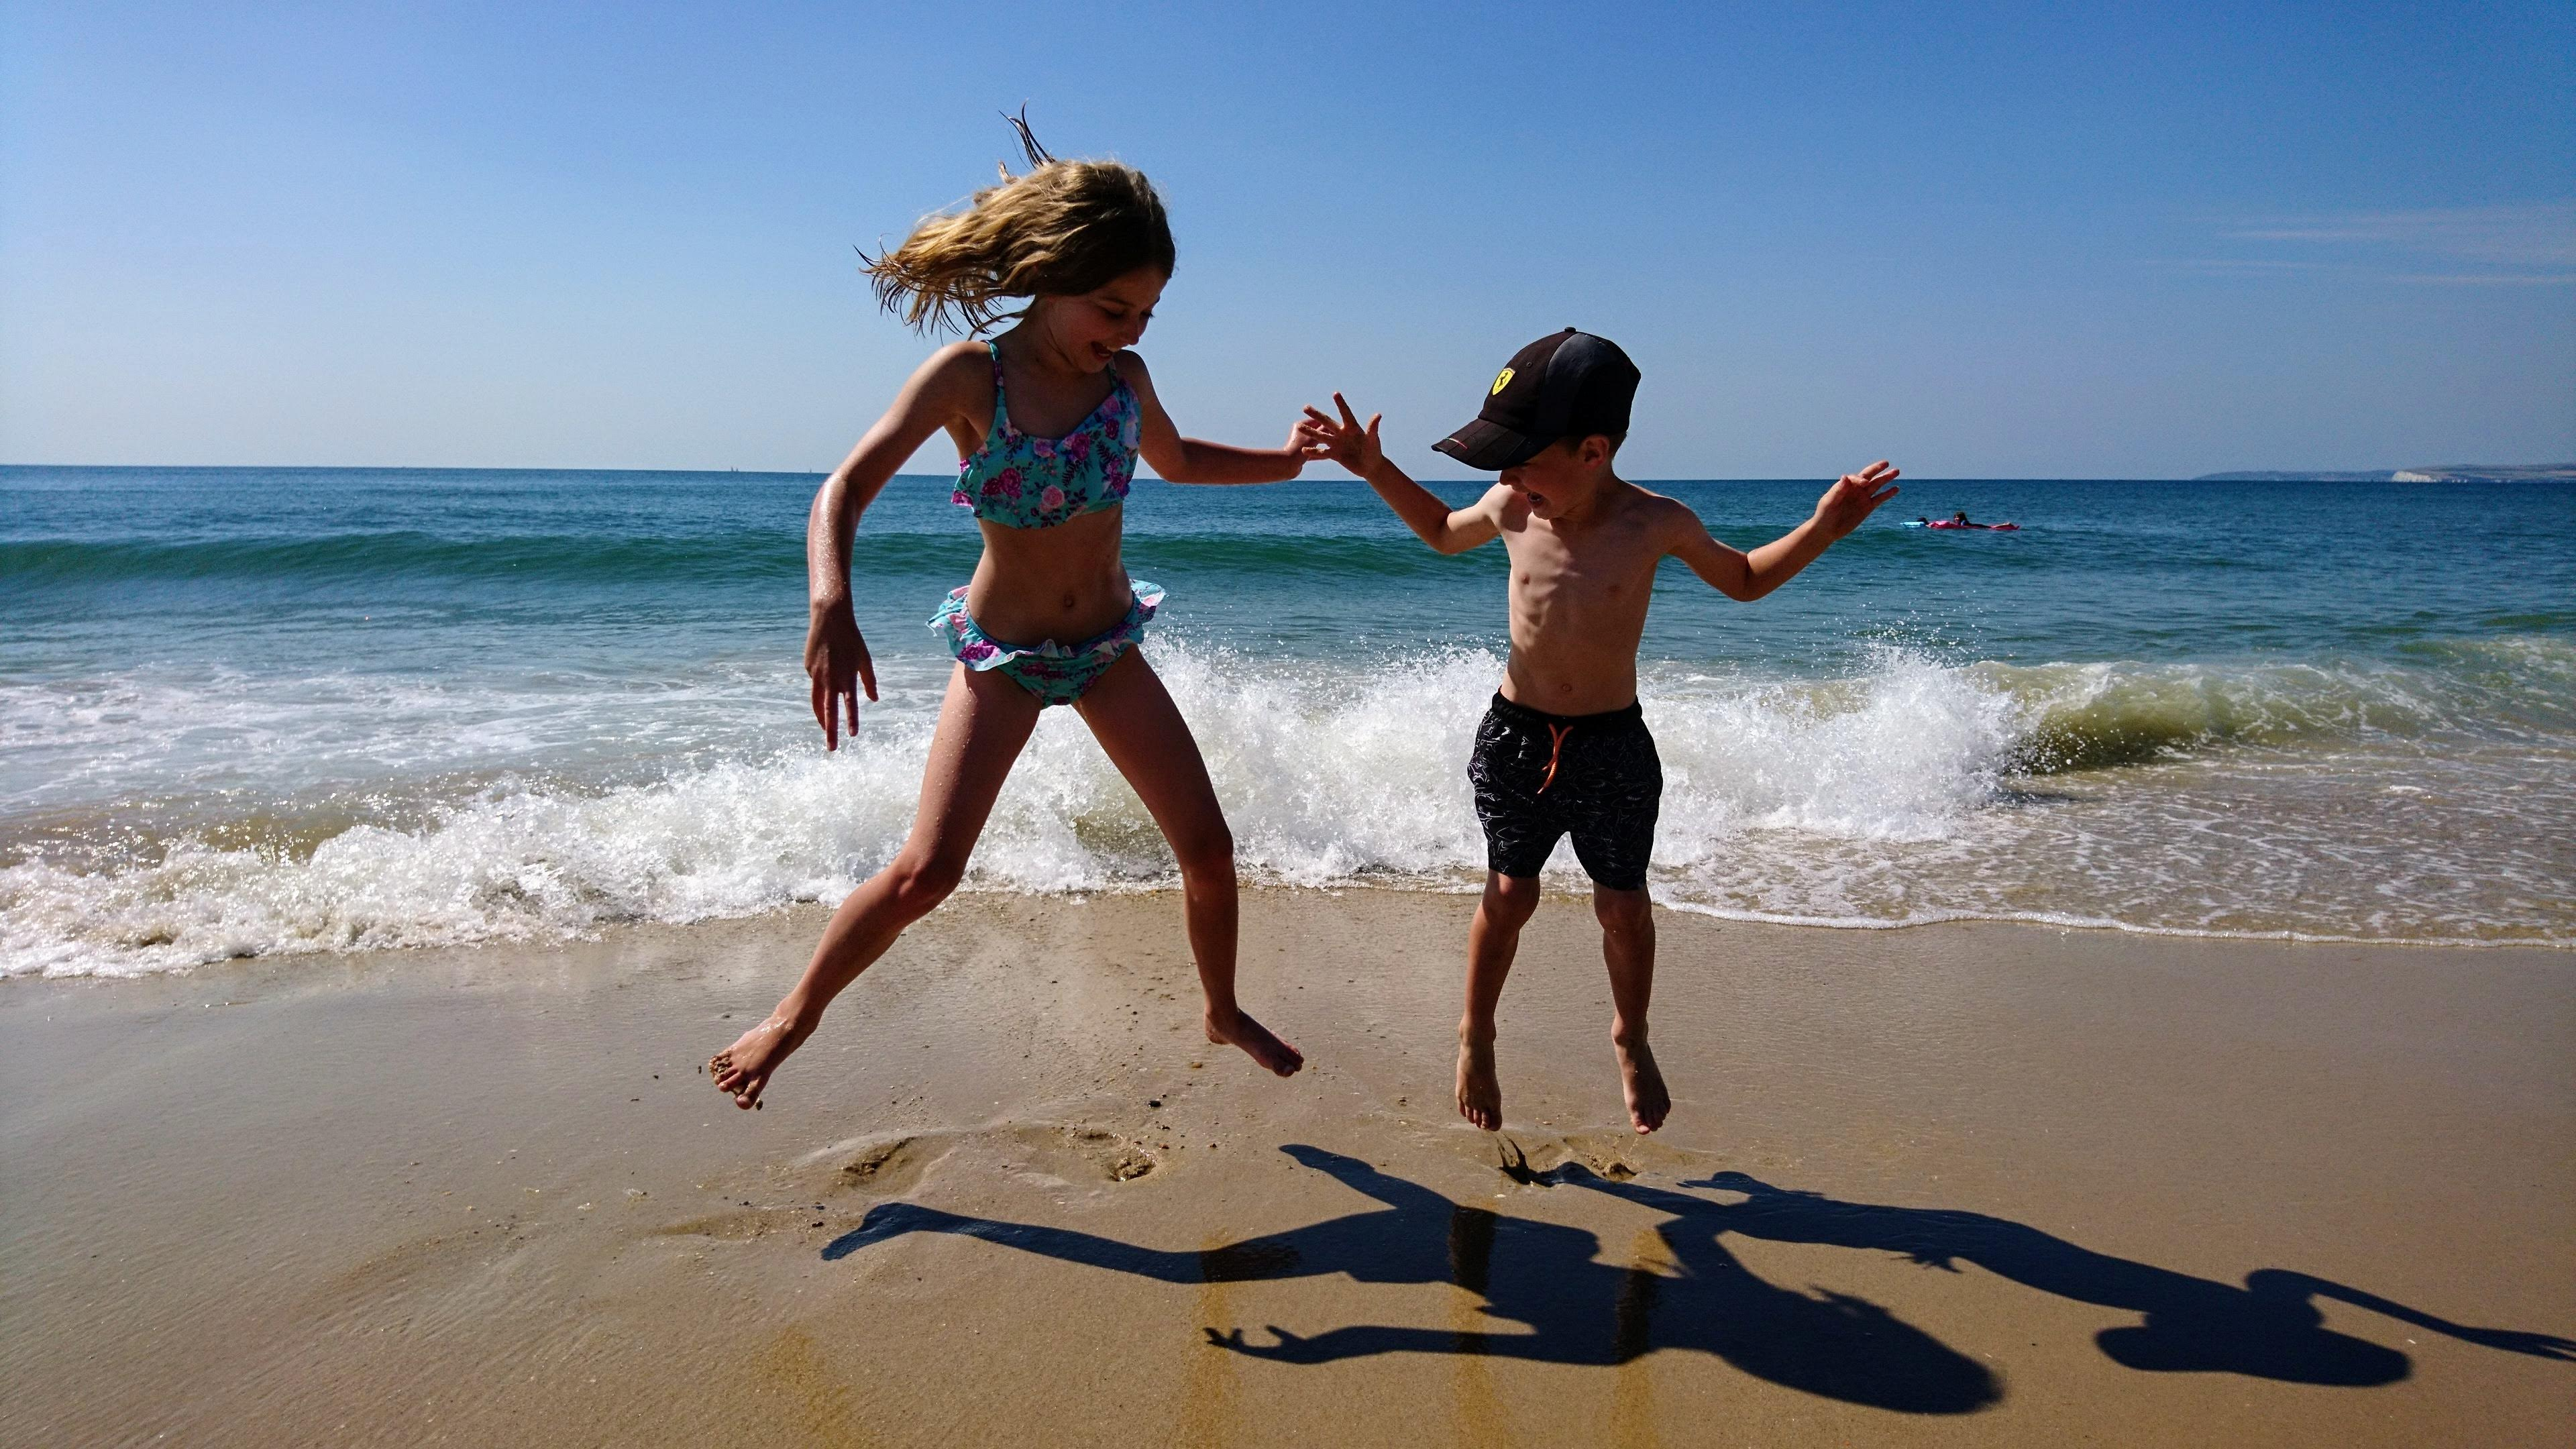 a girl and boy jumping in the air at the beach